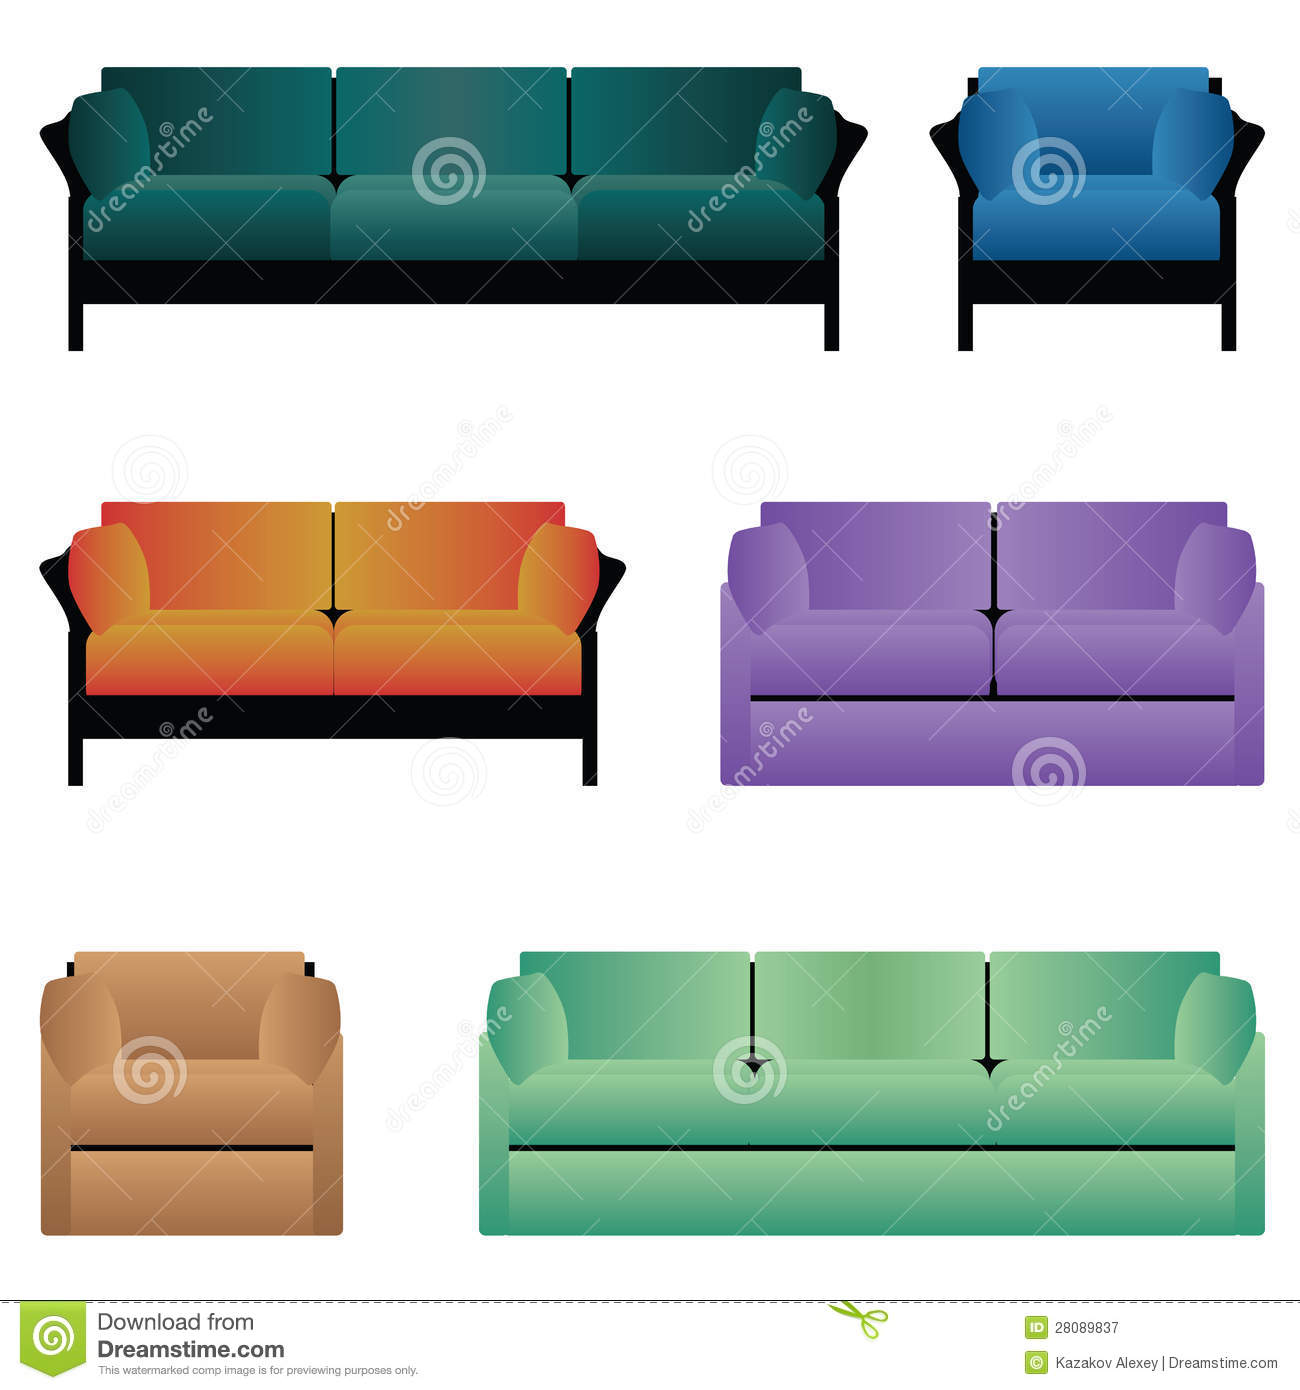 Sofa Set Vector Free Download Set Of Sofas Stock Vector Illustration Of Green Indoors 28089837